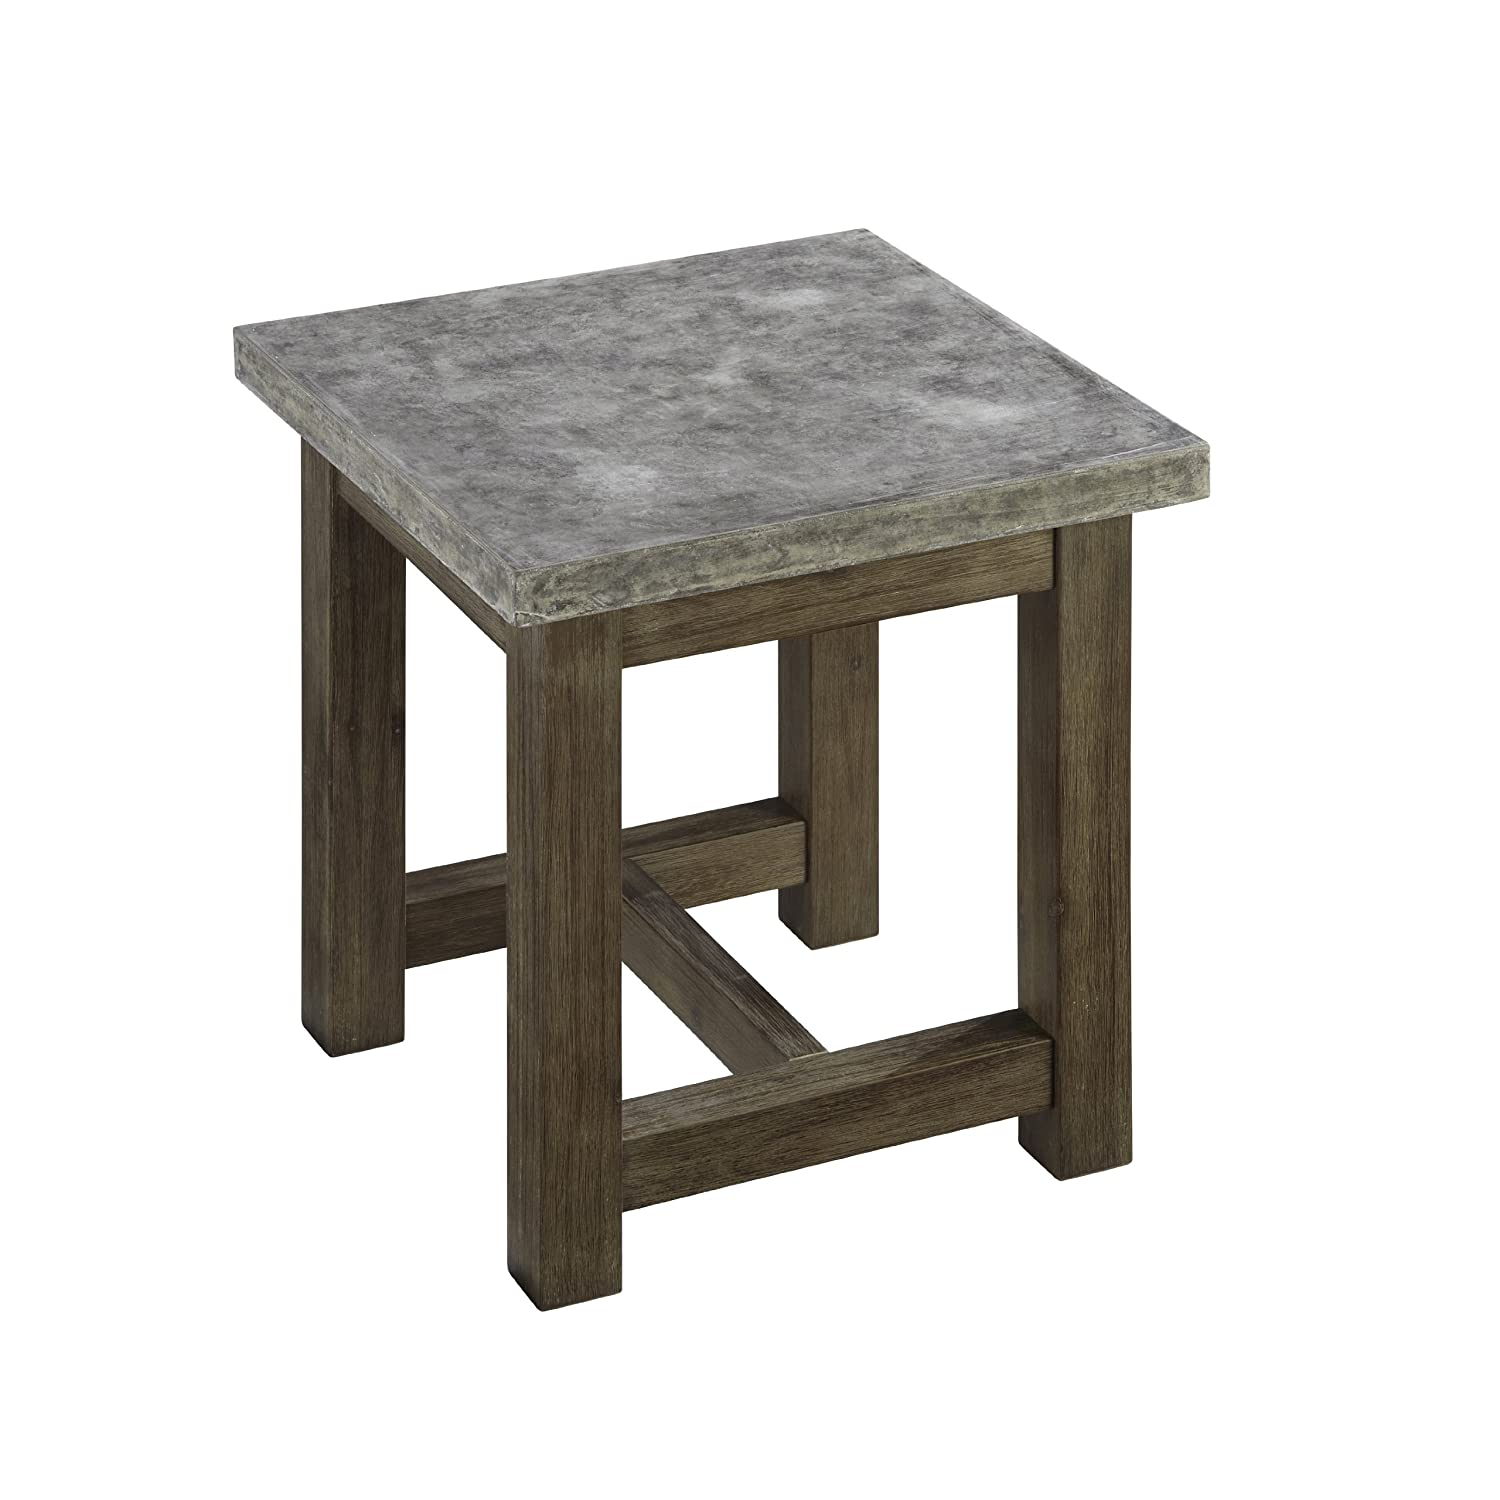 concrete and wood furniture. Amazon.com: Home Styles 5133-20 Concrete Chic End Table: Kitchen \u0026 Dining And Wood Furniture Y